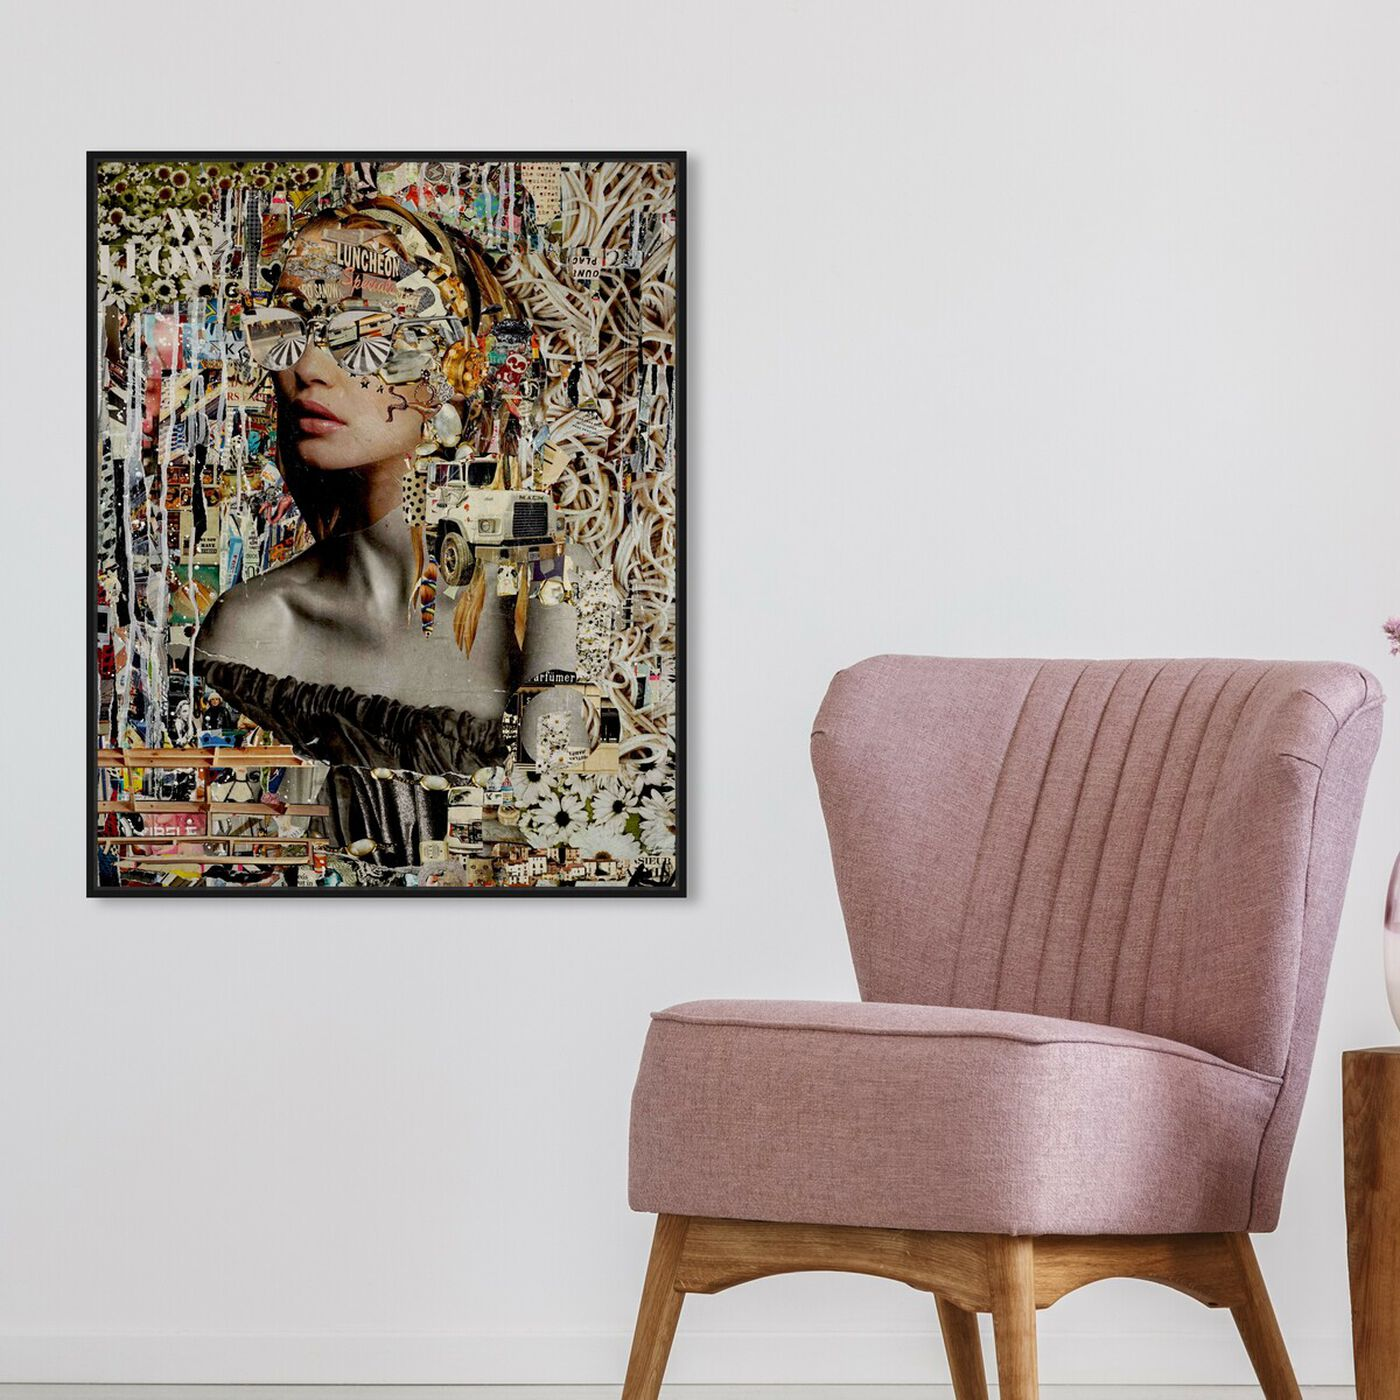 Hanging view of Katy Hirschfeld - Flower Modern featuring fashion and glam and portraits art.